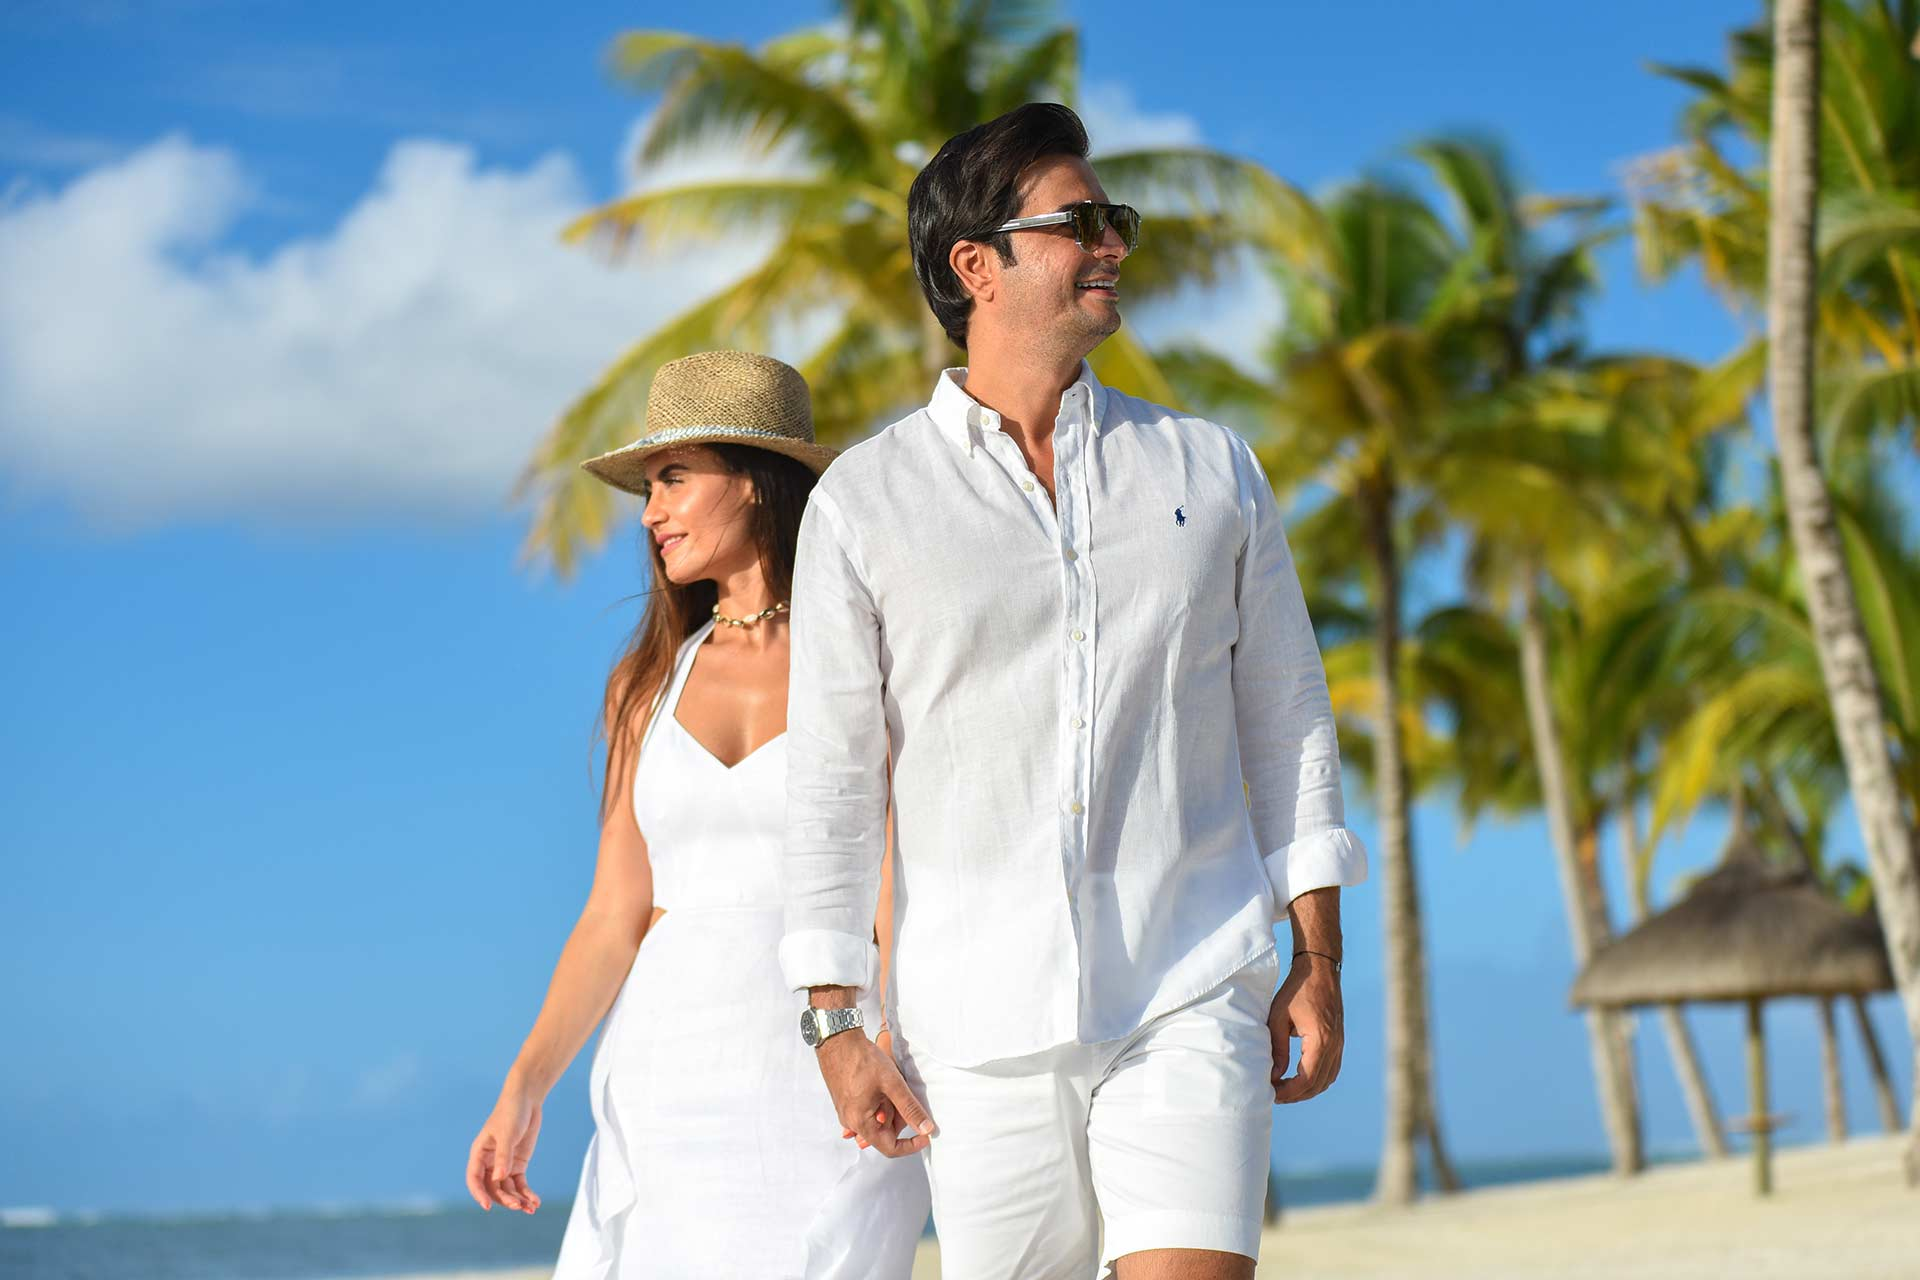 Classy Couple with white clothing on Tropical Beach